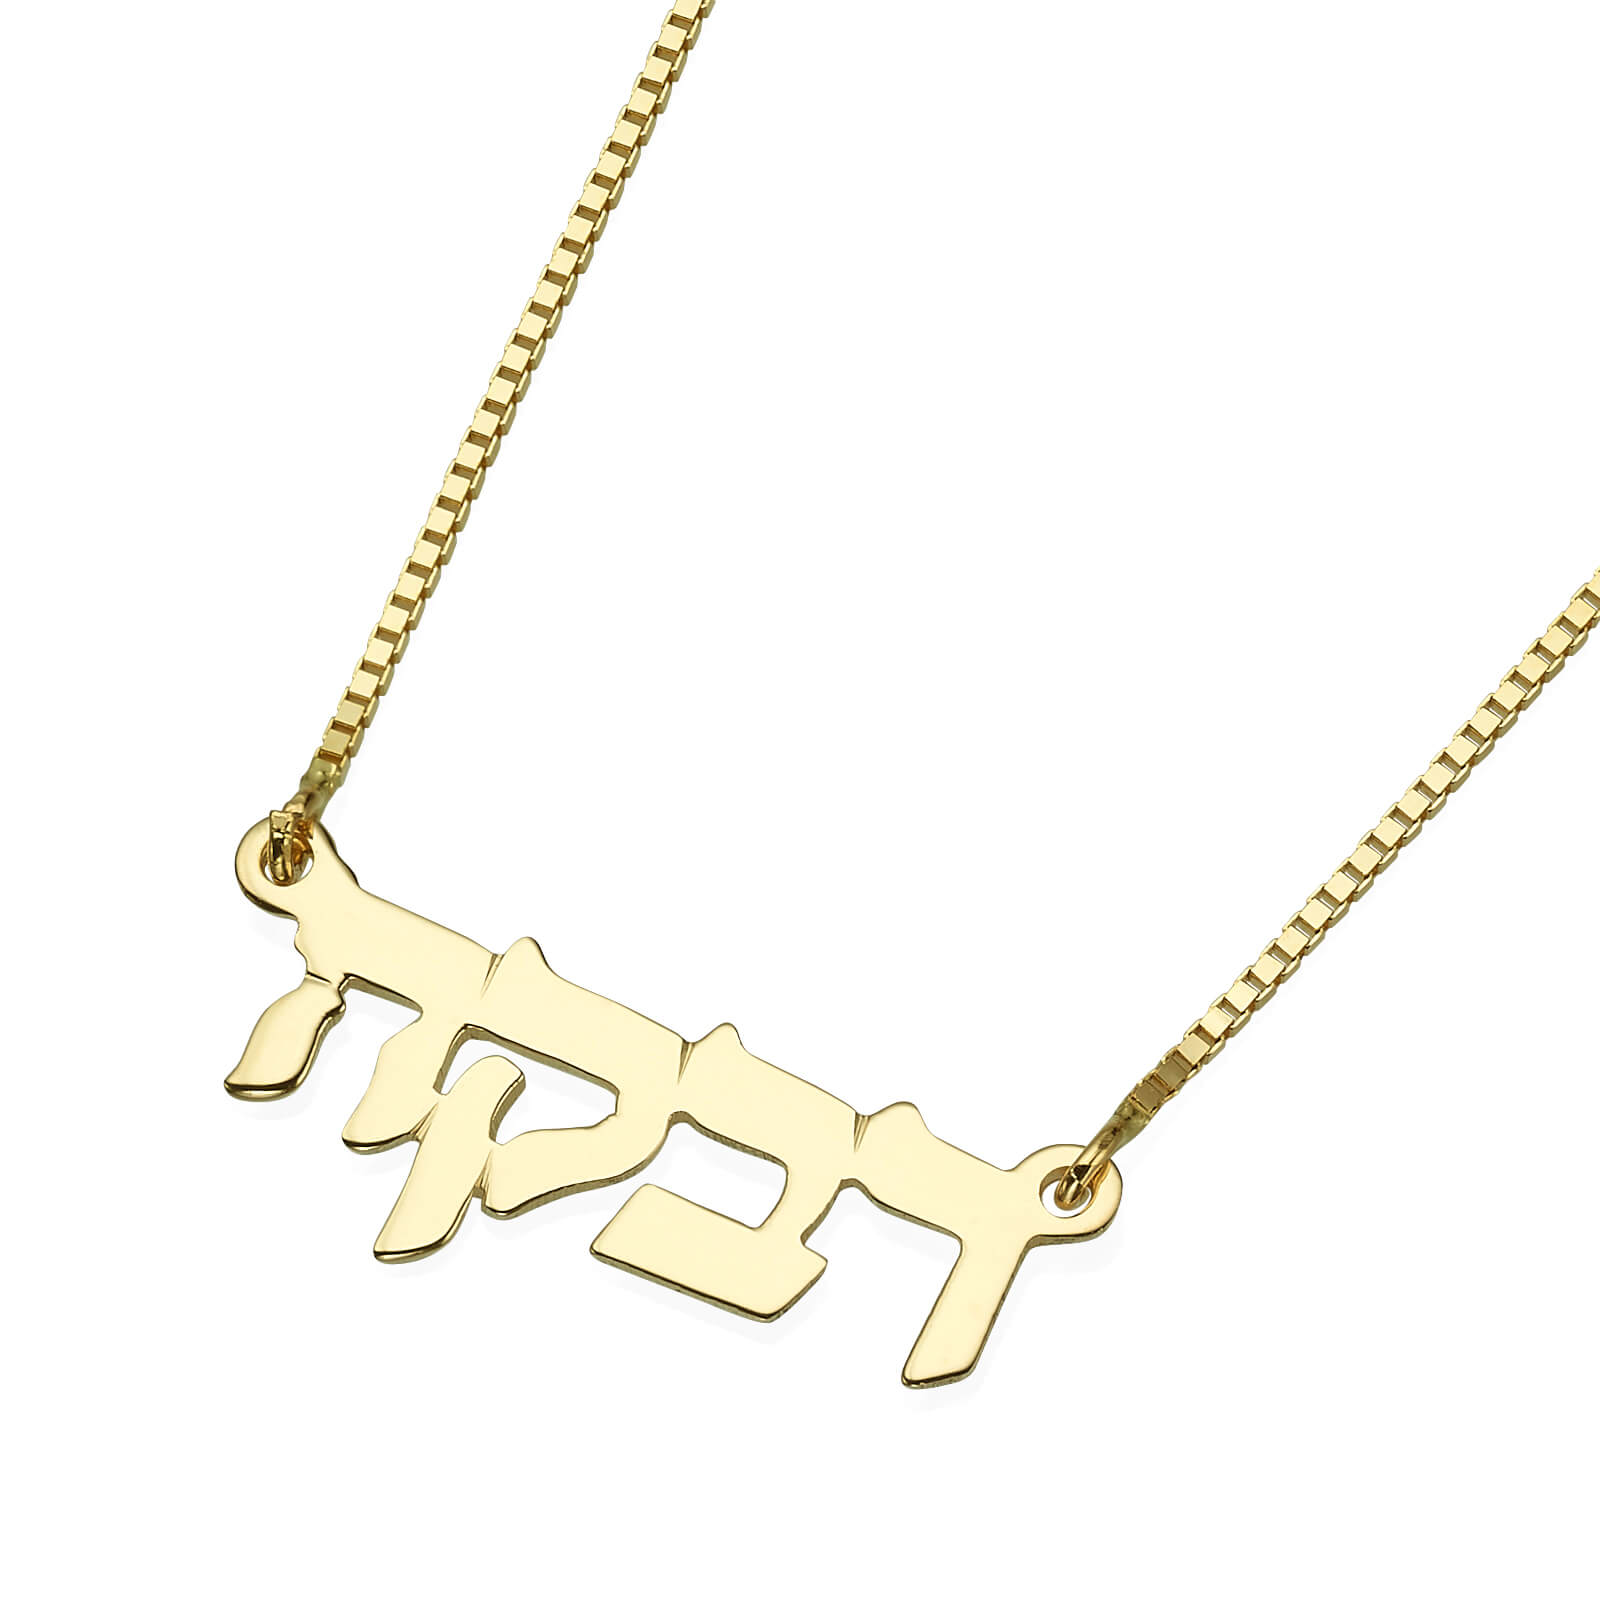 14k Gold Name Necklace Double Thickness - Baltinester Jewelry